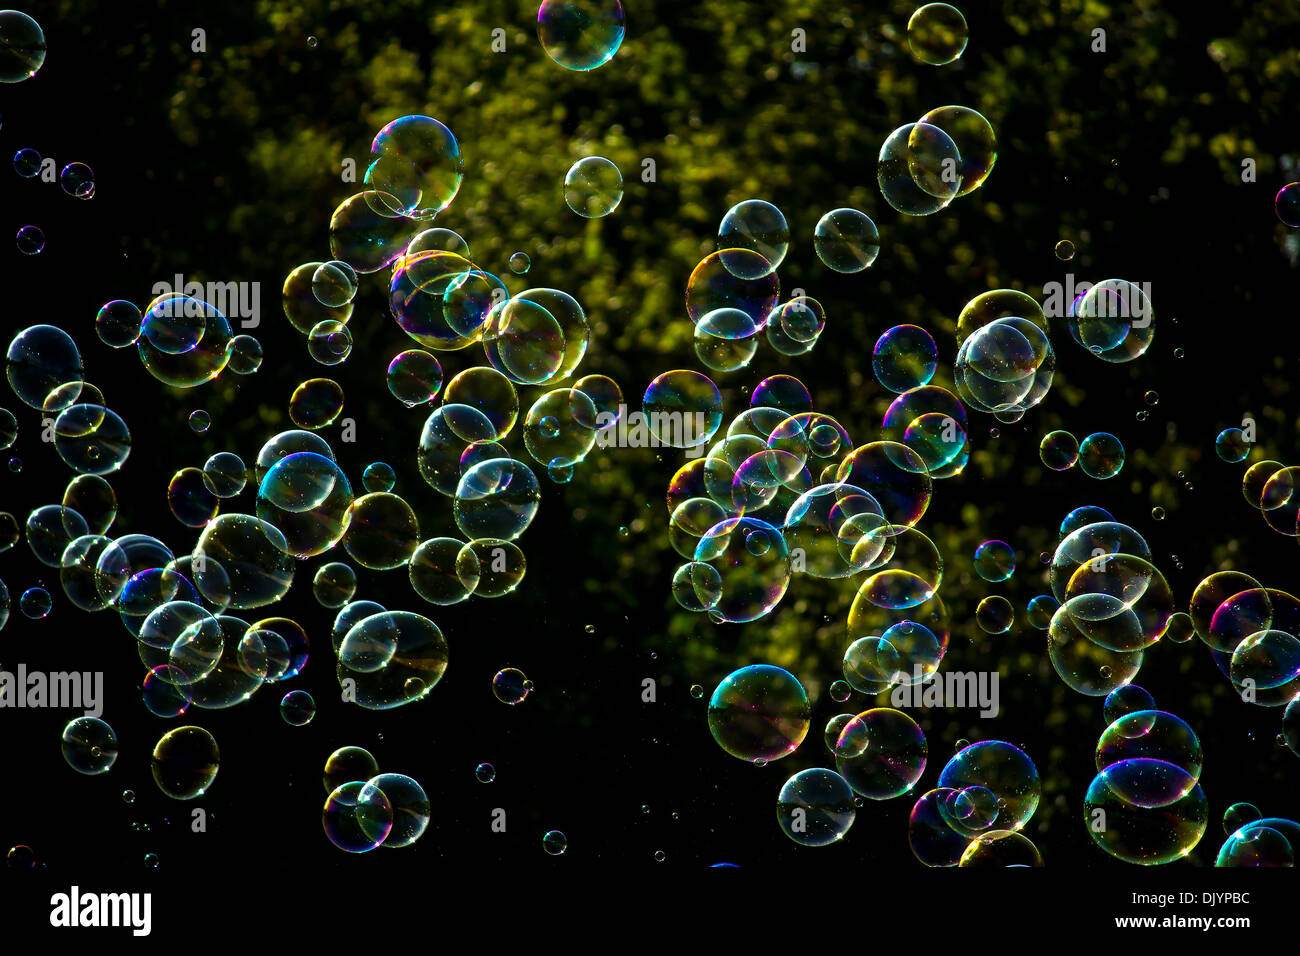 colorful floating soap bubbles in the air - Stock Image